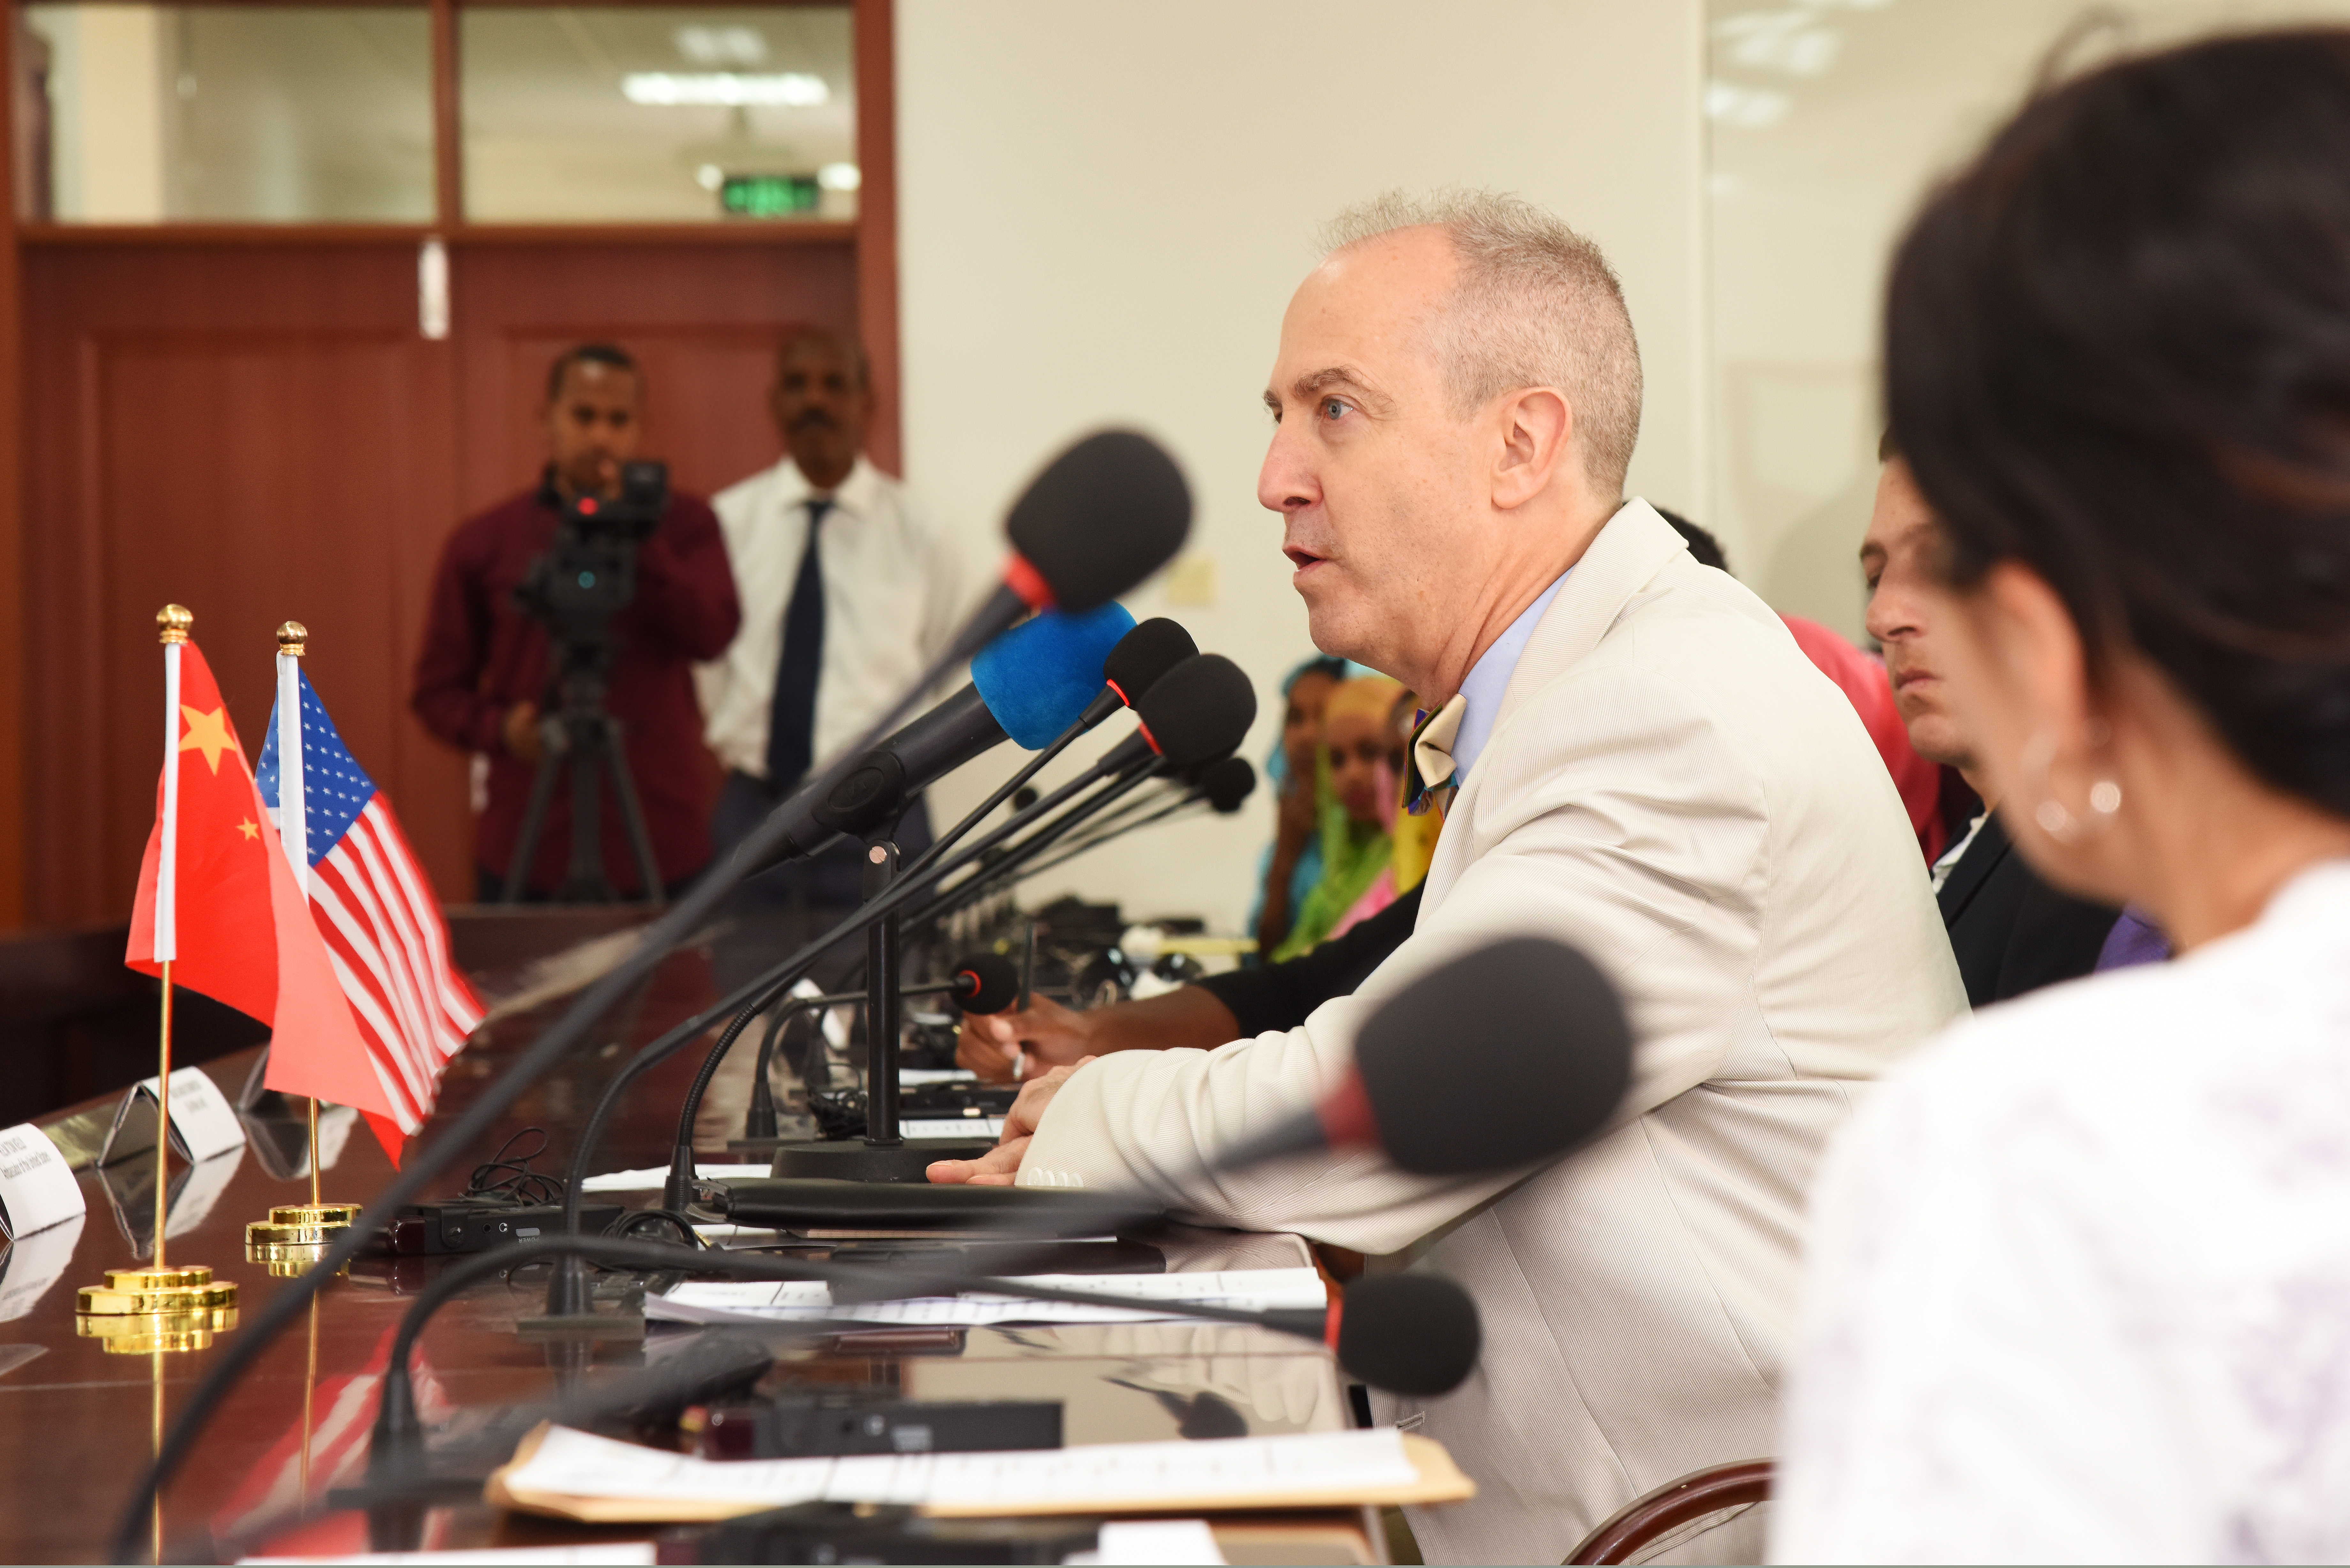 Tom Kelly, U.S. Ambassador to Djibouti, speaks about the importance of learning multiple languages during a graduation ceremony at the Institute of Diplomatic Studies in Djibouti, June 14, 2015.  During the last academic year, the graduates have been studying English, Chinese or Amharic.  (U.S. Air Force photo by Staff Sgt. Maria Bowman)